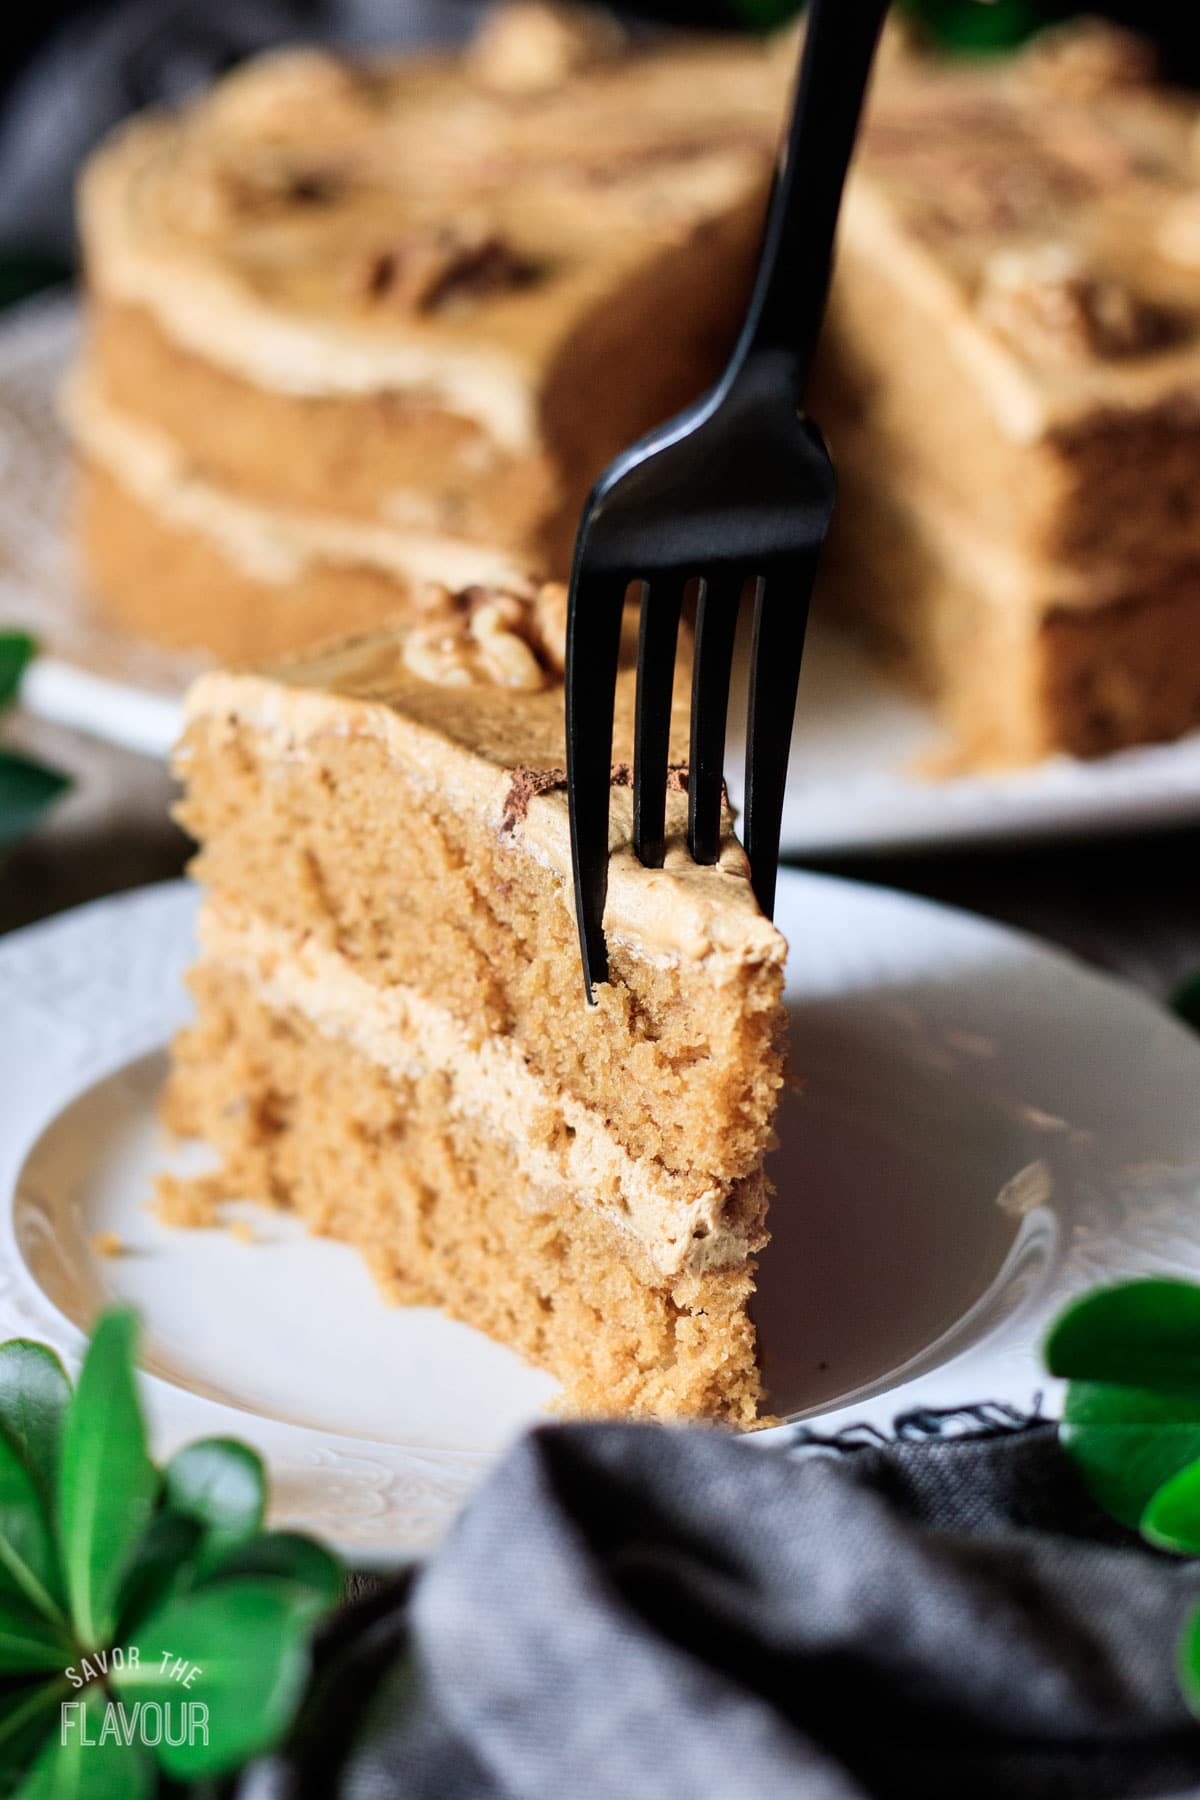 person digging a fork into a slice of coffee walnut cake